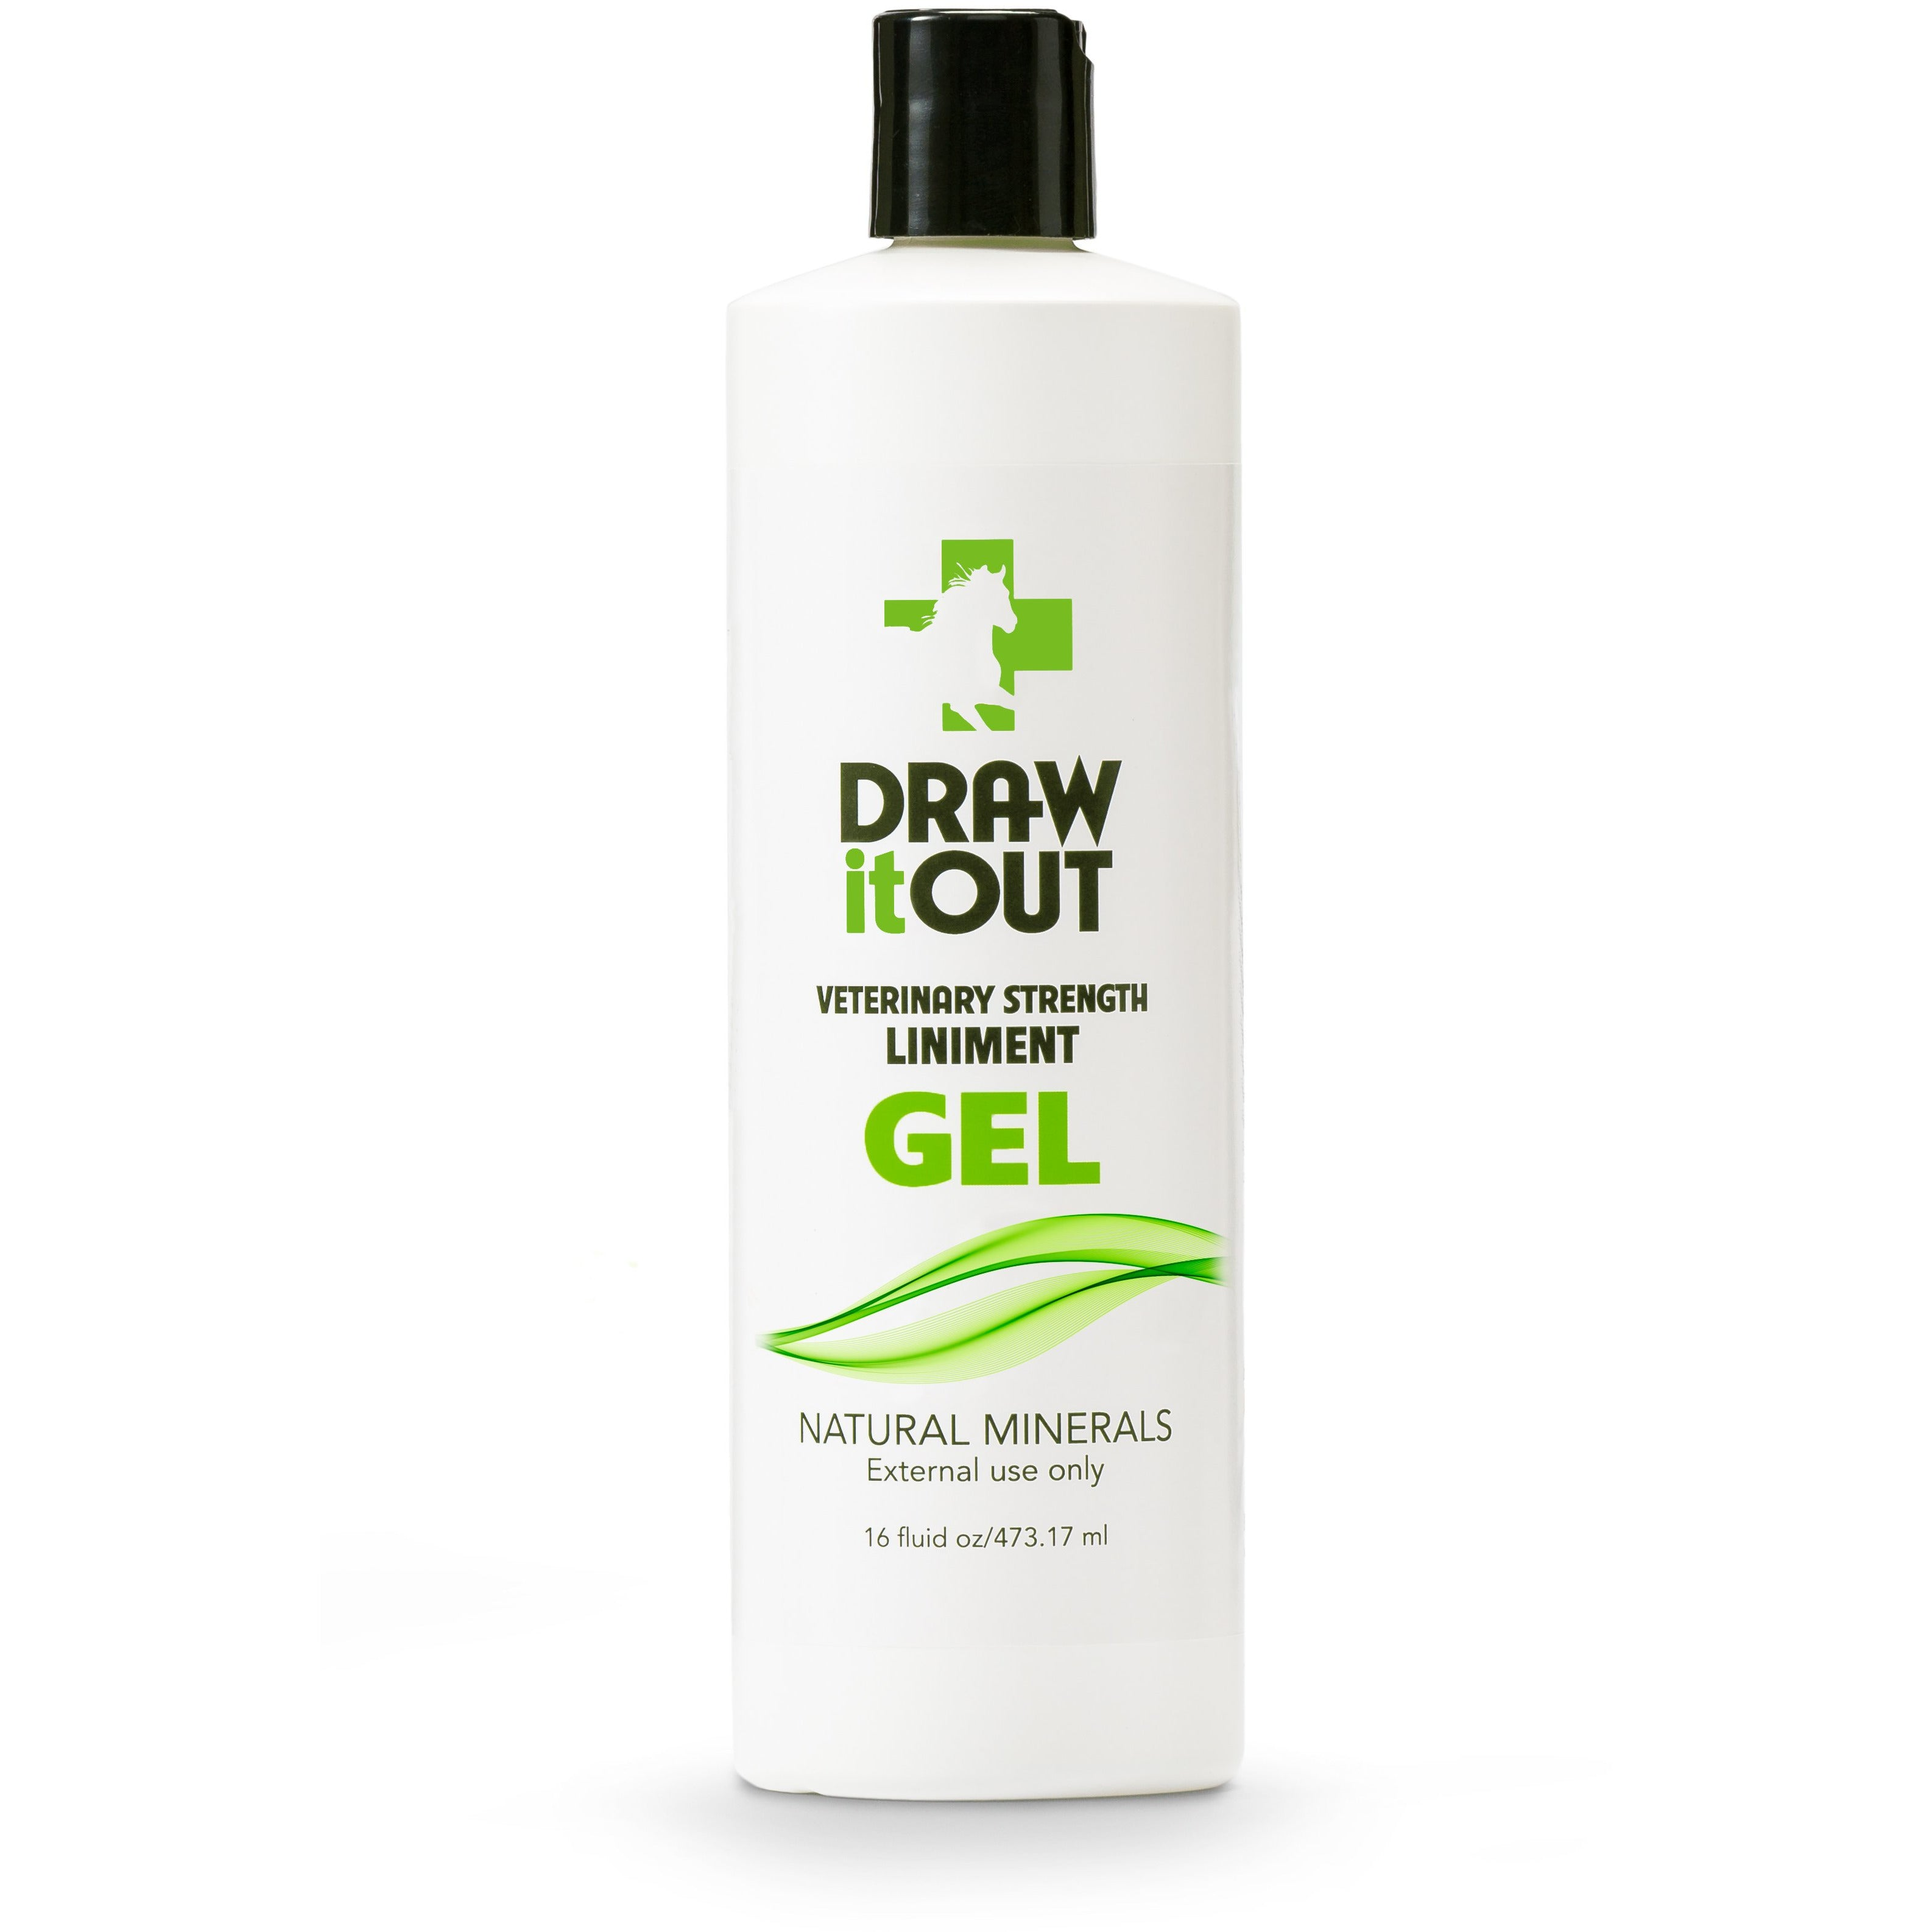 Veterinary Strength Liniment Draw it Out Topical Analgesic Gel and Pain